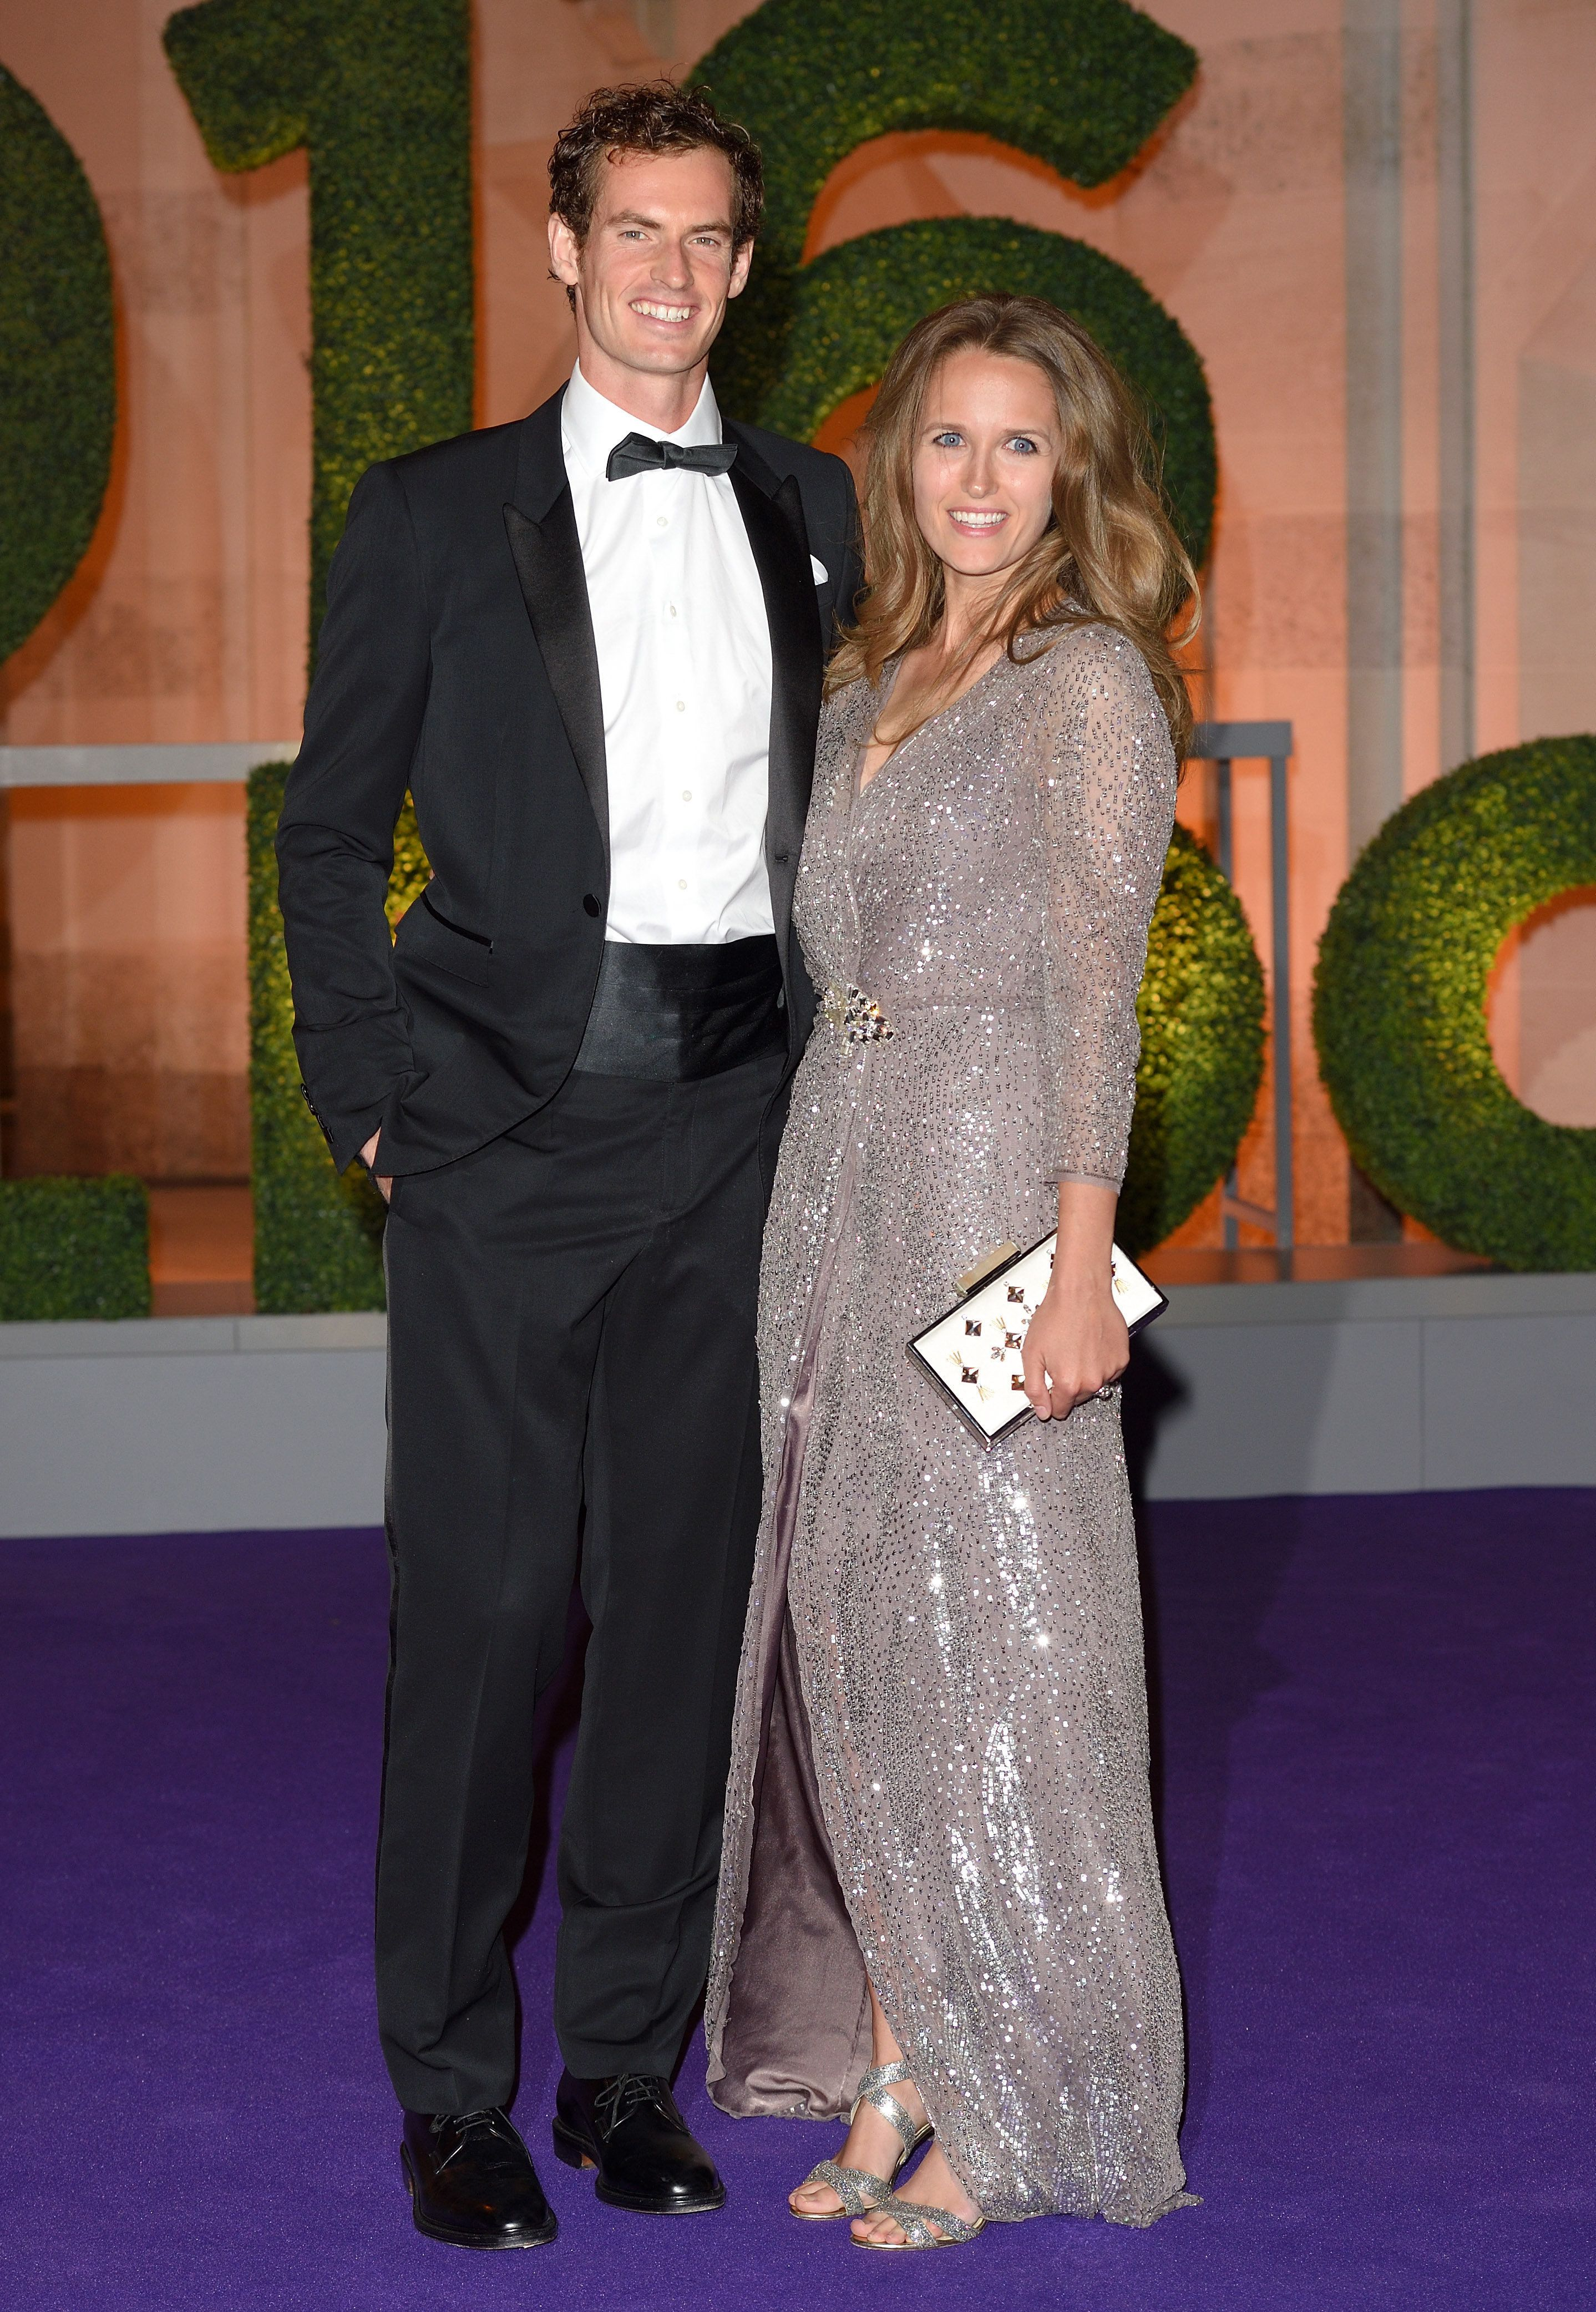 Andy Murray Reveals His Wife Kim Sears Is Pregnant With Their Second